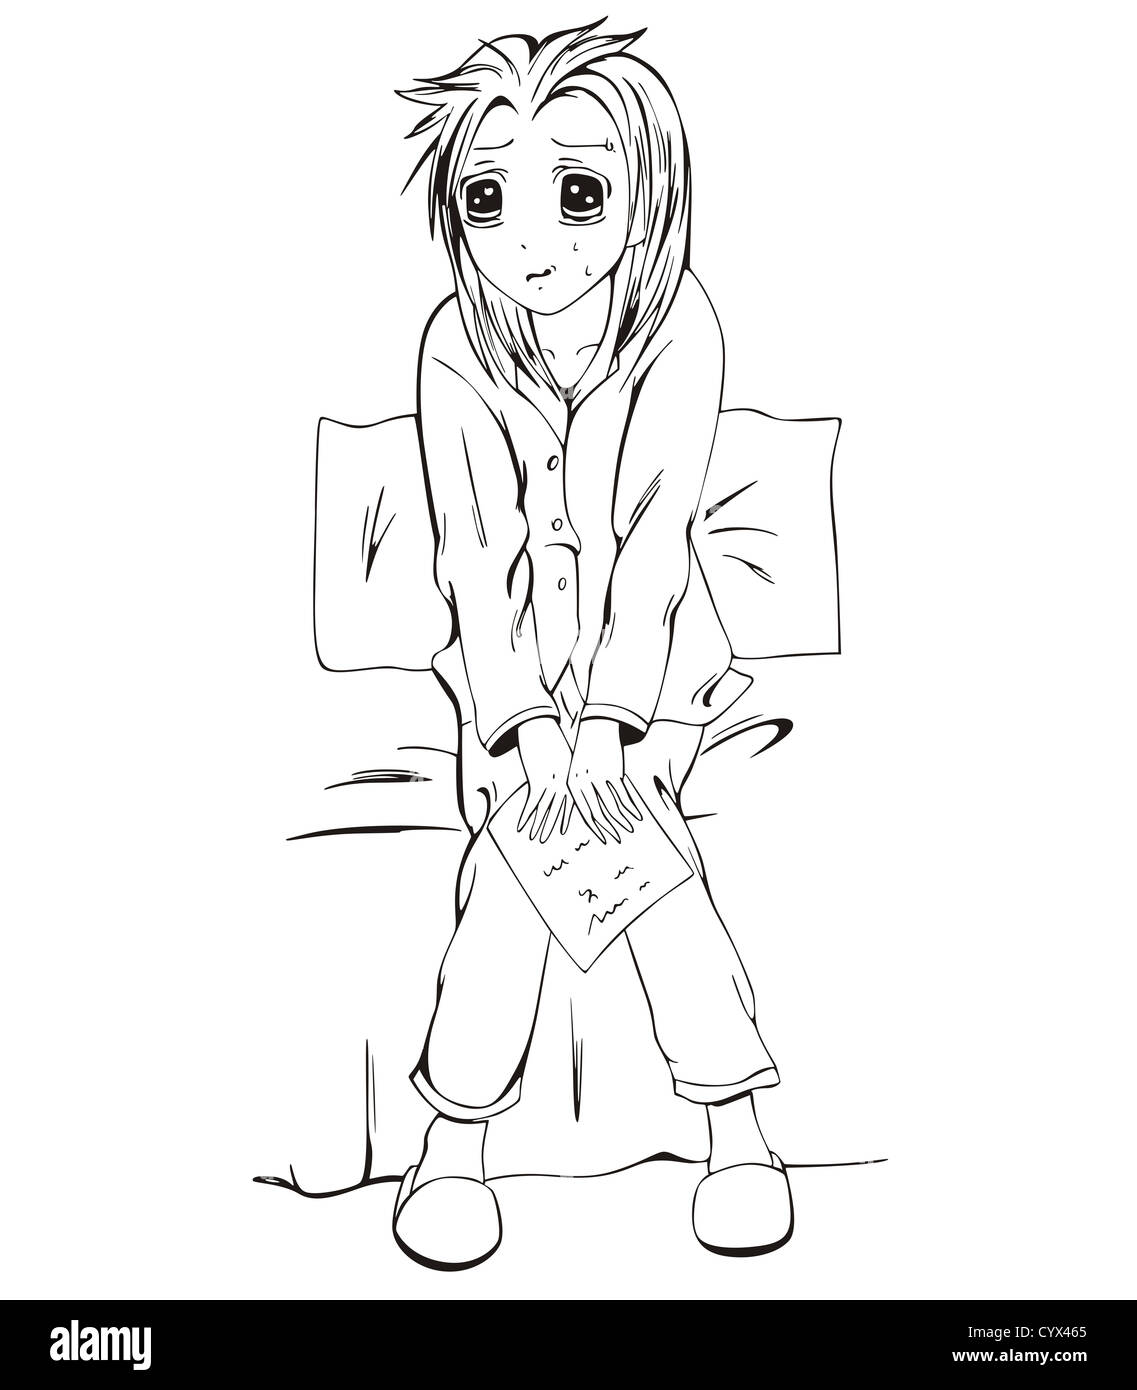 Sad anime girl siting on bed with letter black and white vector illustration